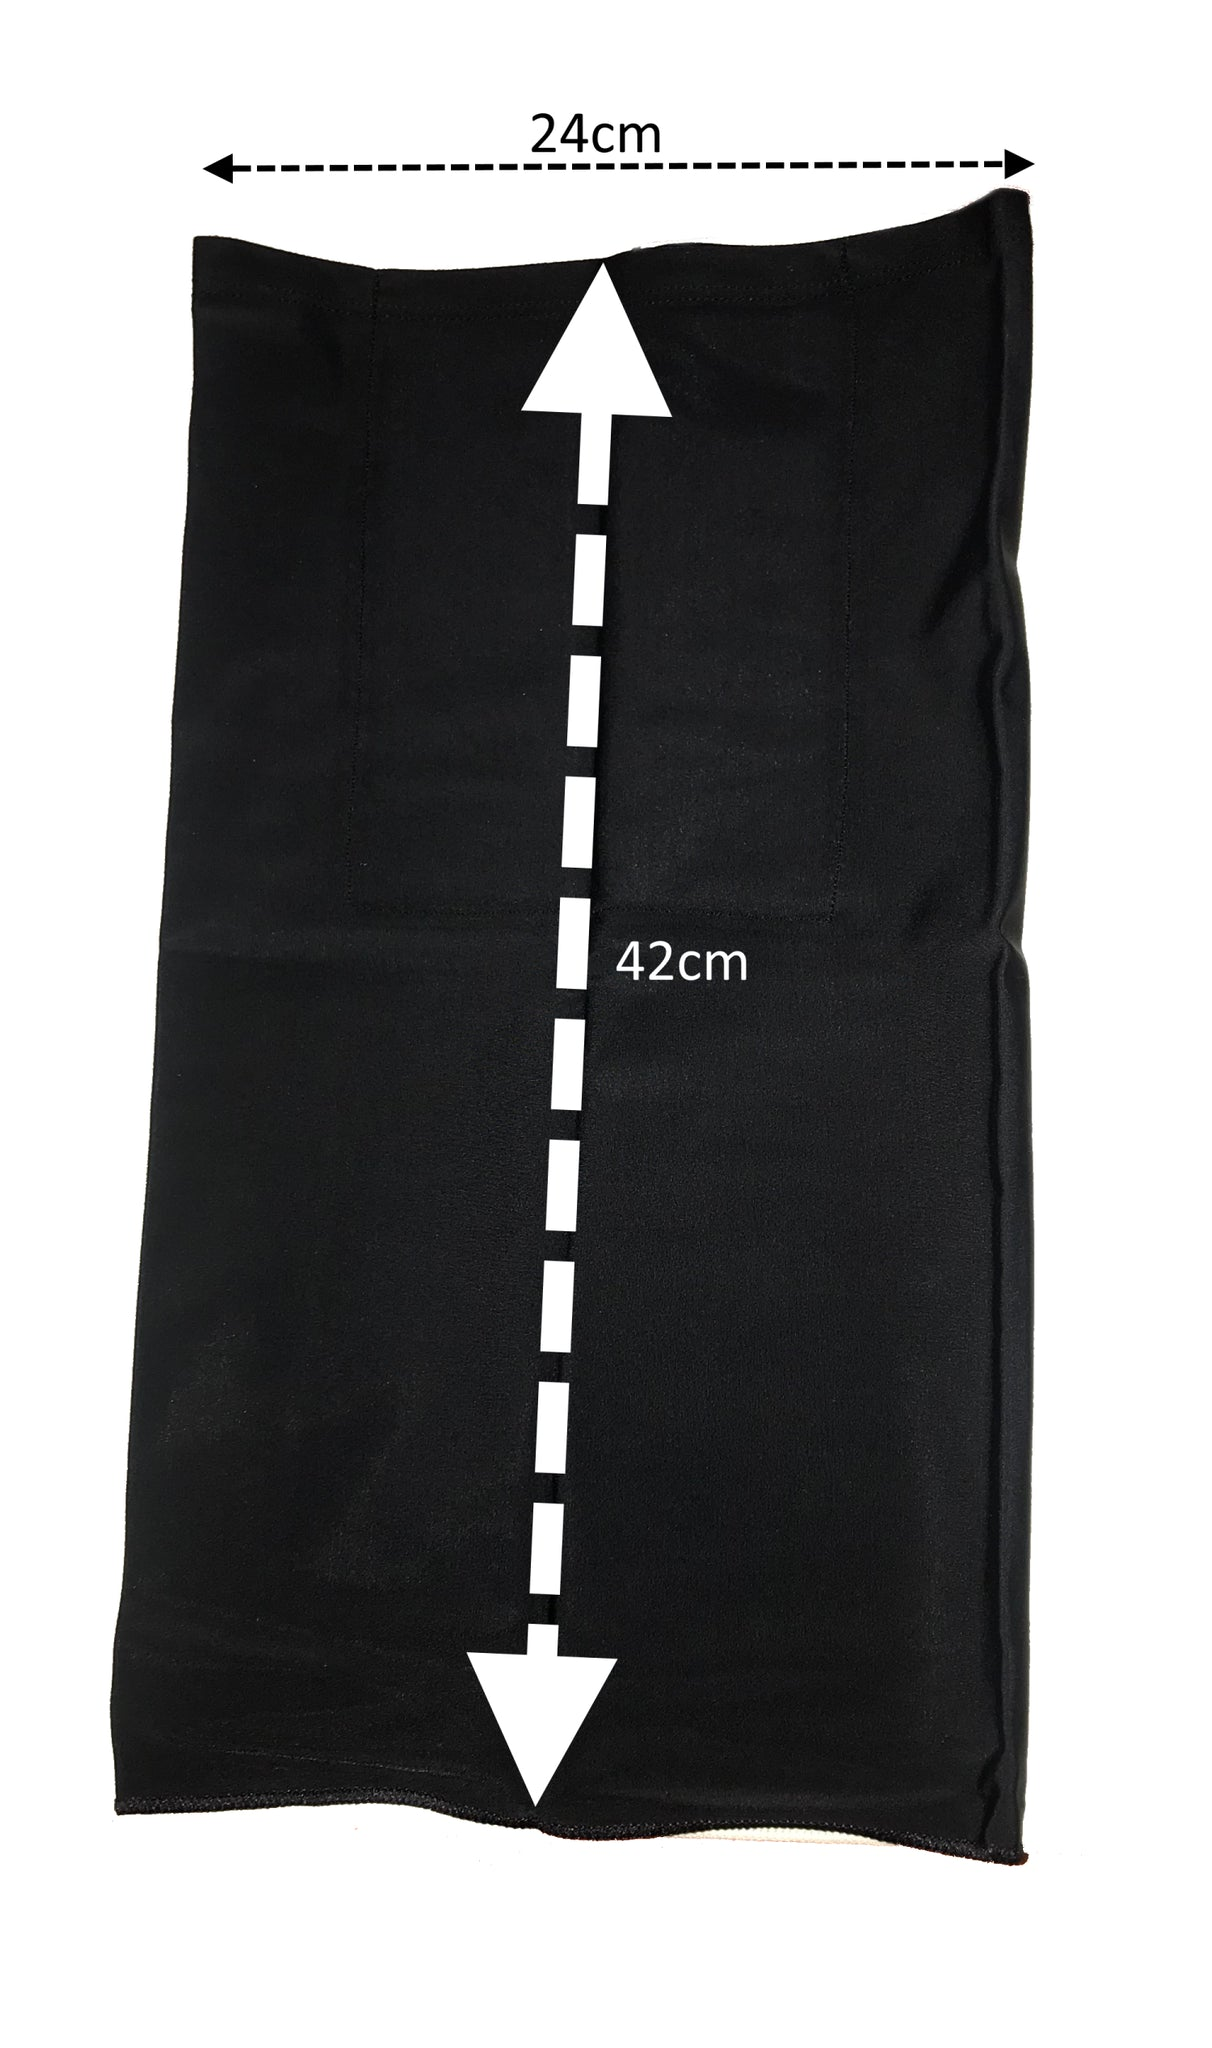 Black Face-buff with Pocket - Pack of 2